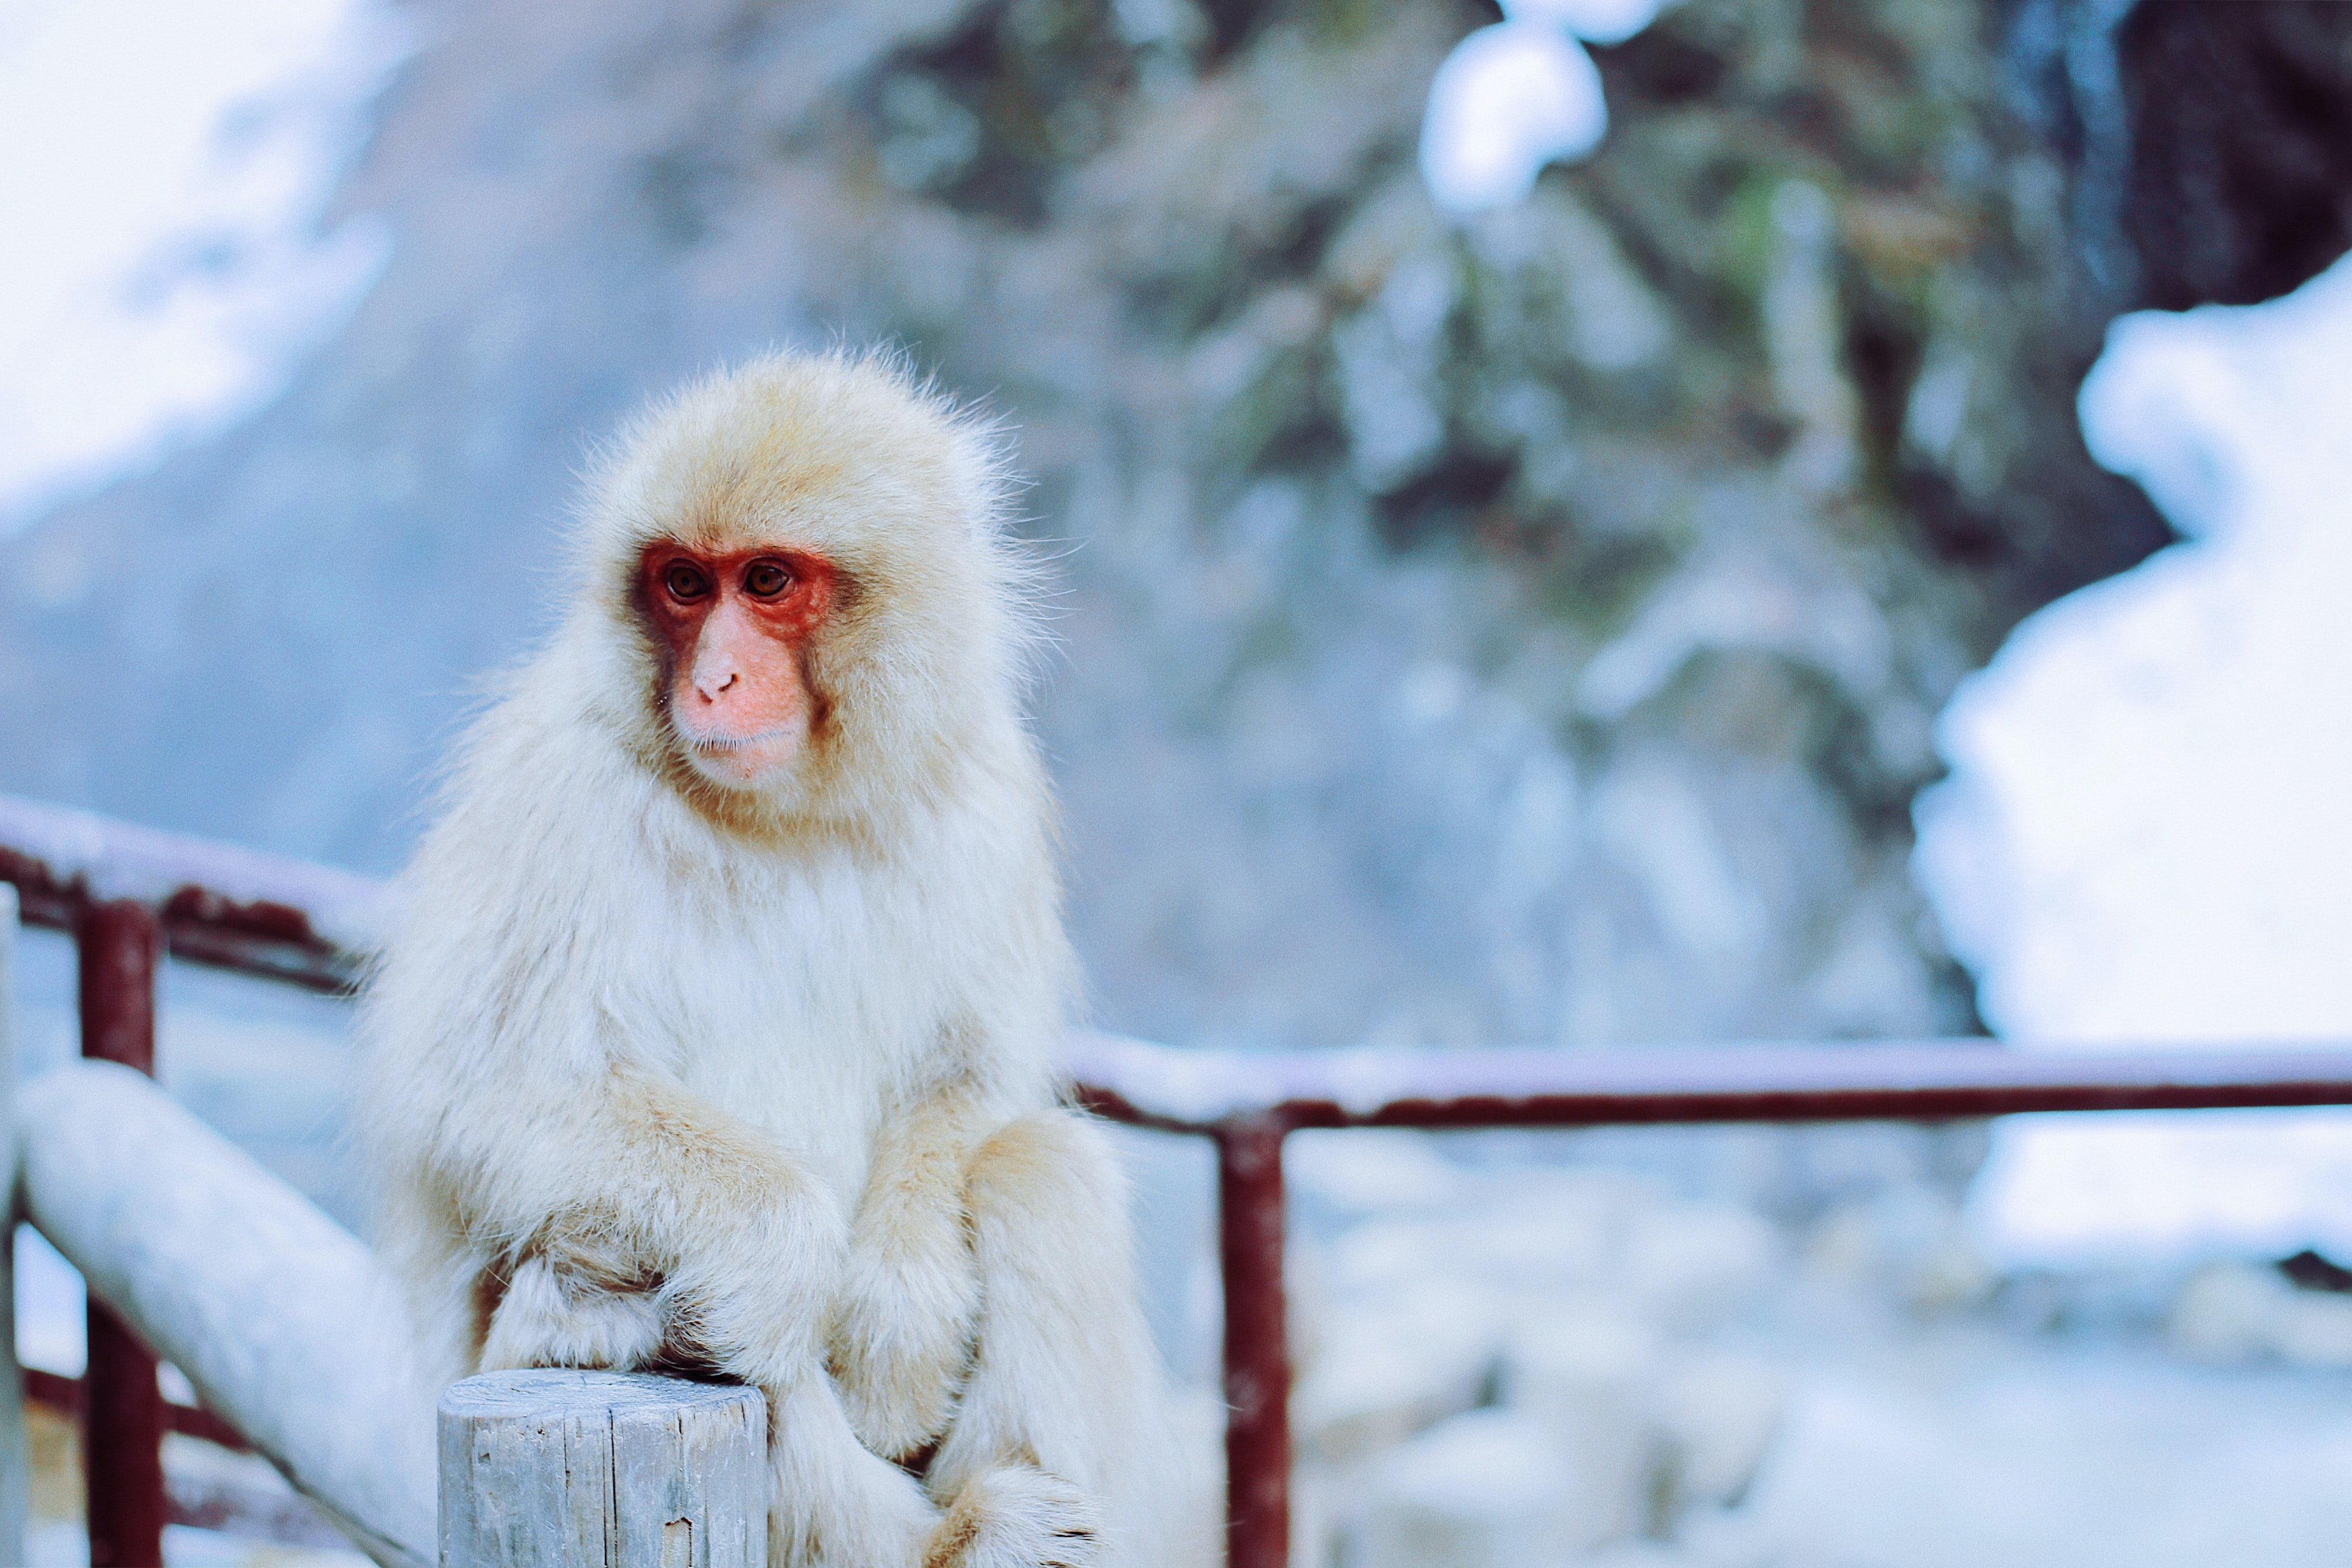 Monkey with white hair and red face surrounded by a snowy landscape and red, snow-covered rails